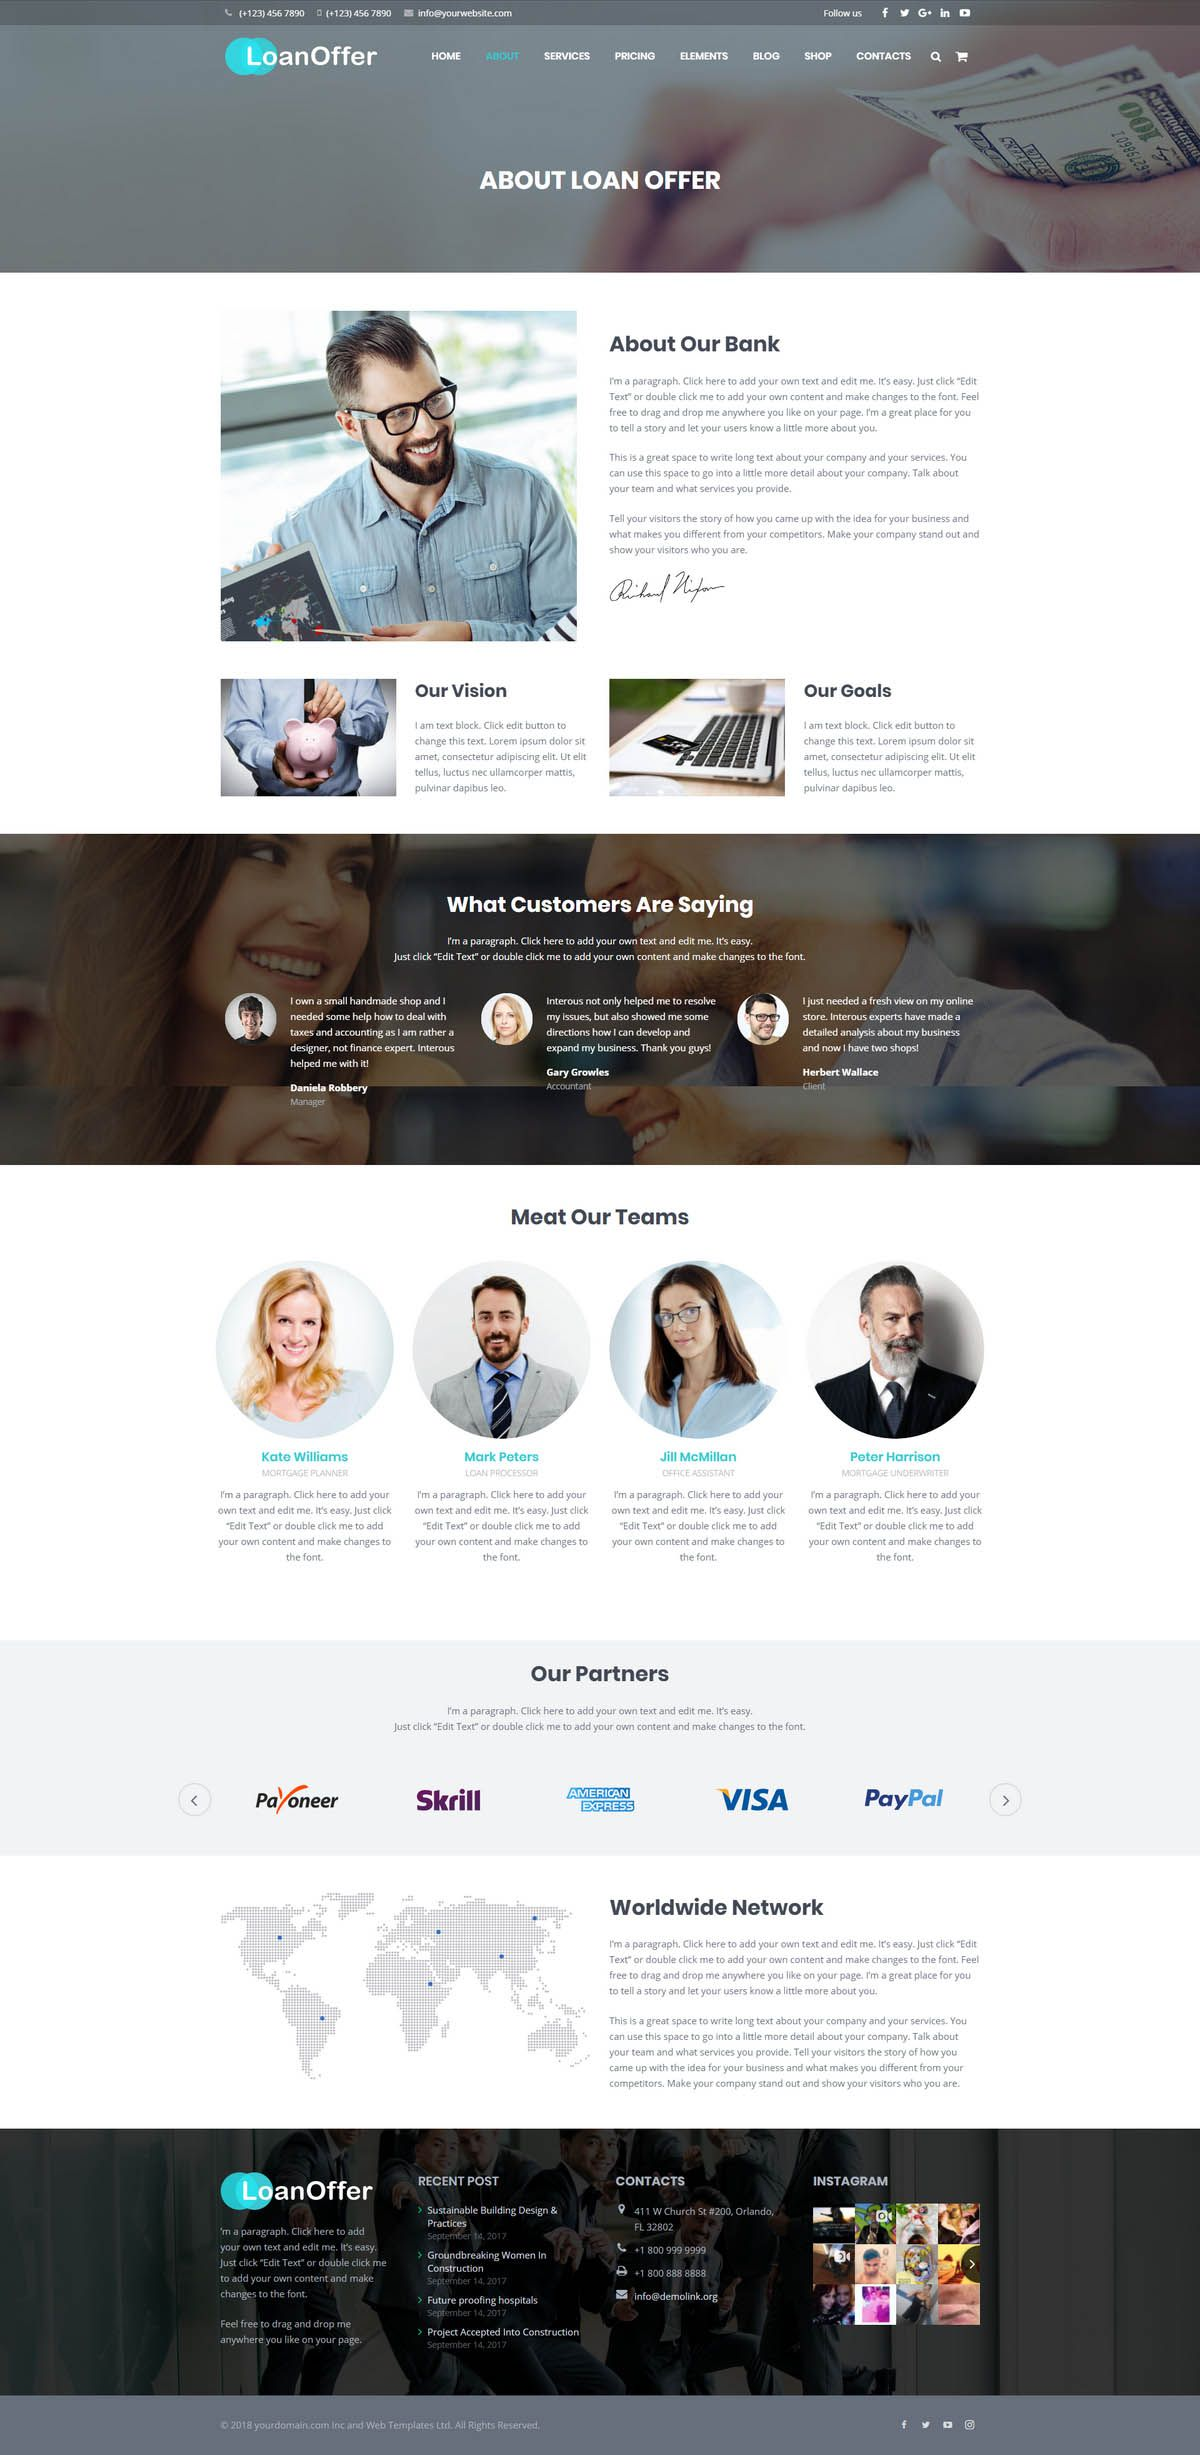 LoanOffer - Business Loan WordPress Theme Screenshot 3